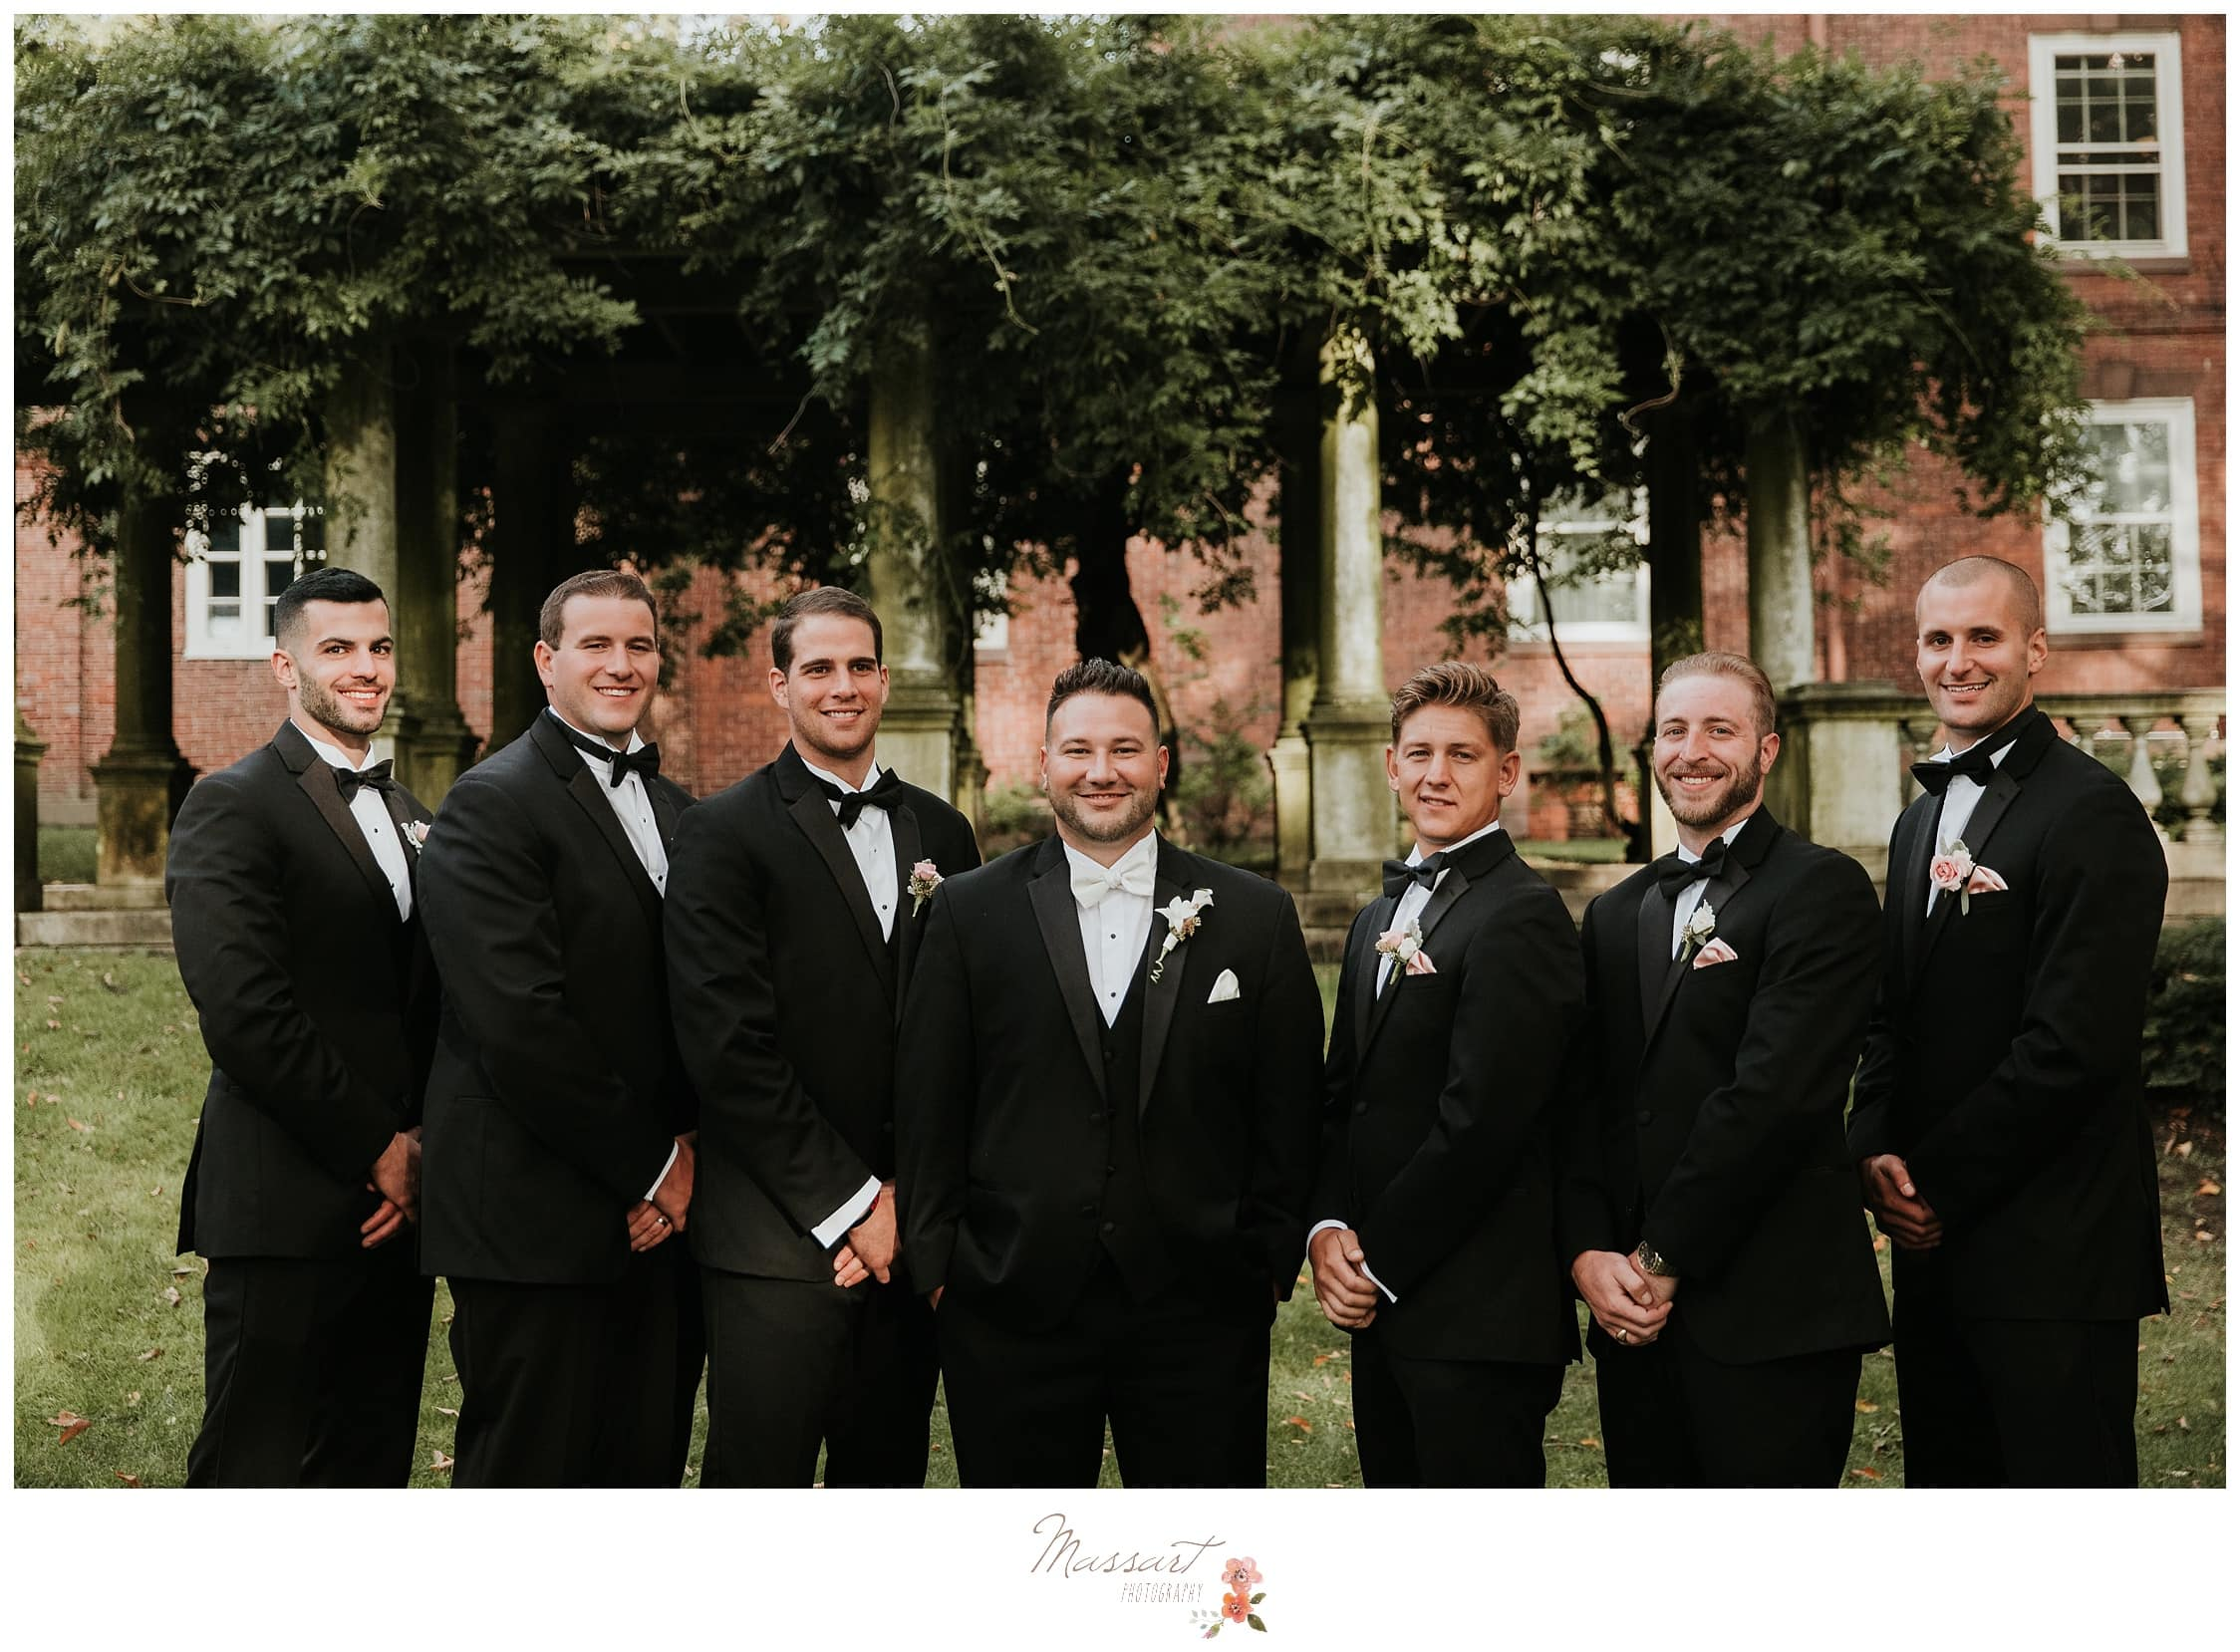 Formal portraits of the groom and groomsmen photographed by Massart Photography Rhode Island